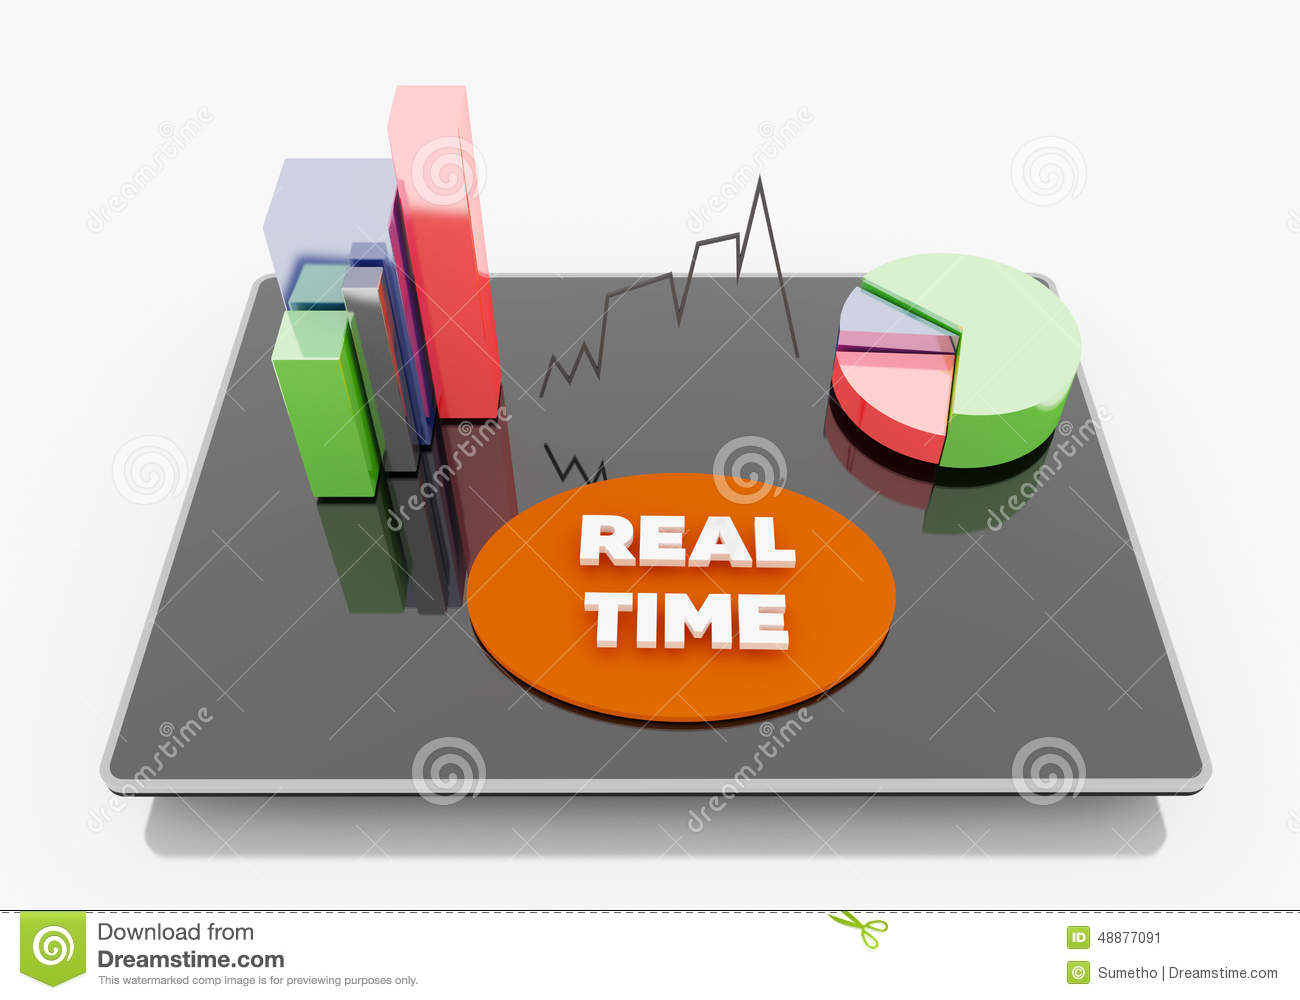 real time online dating Although there are differences between online dating and real-time meetings, the basic rules are the same.